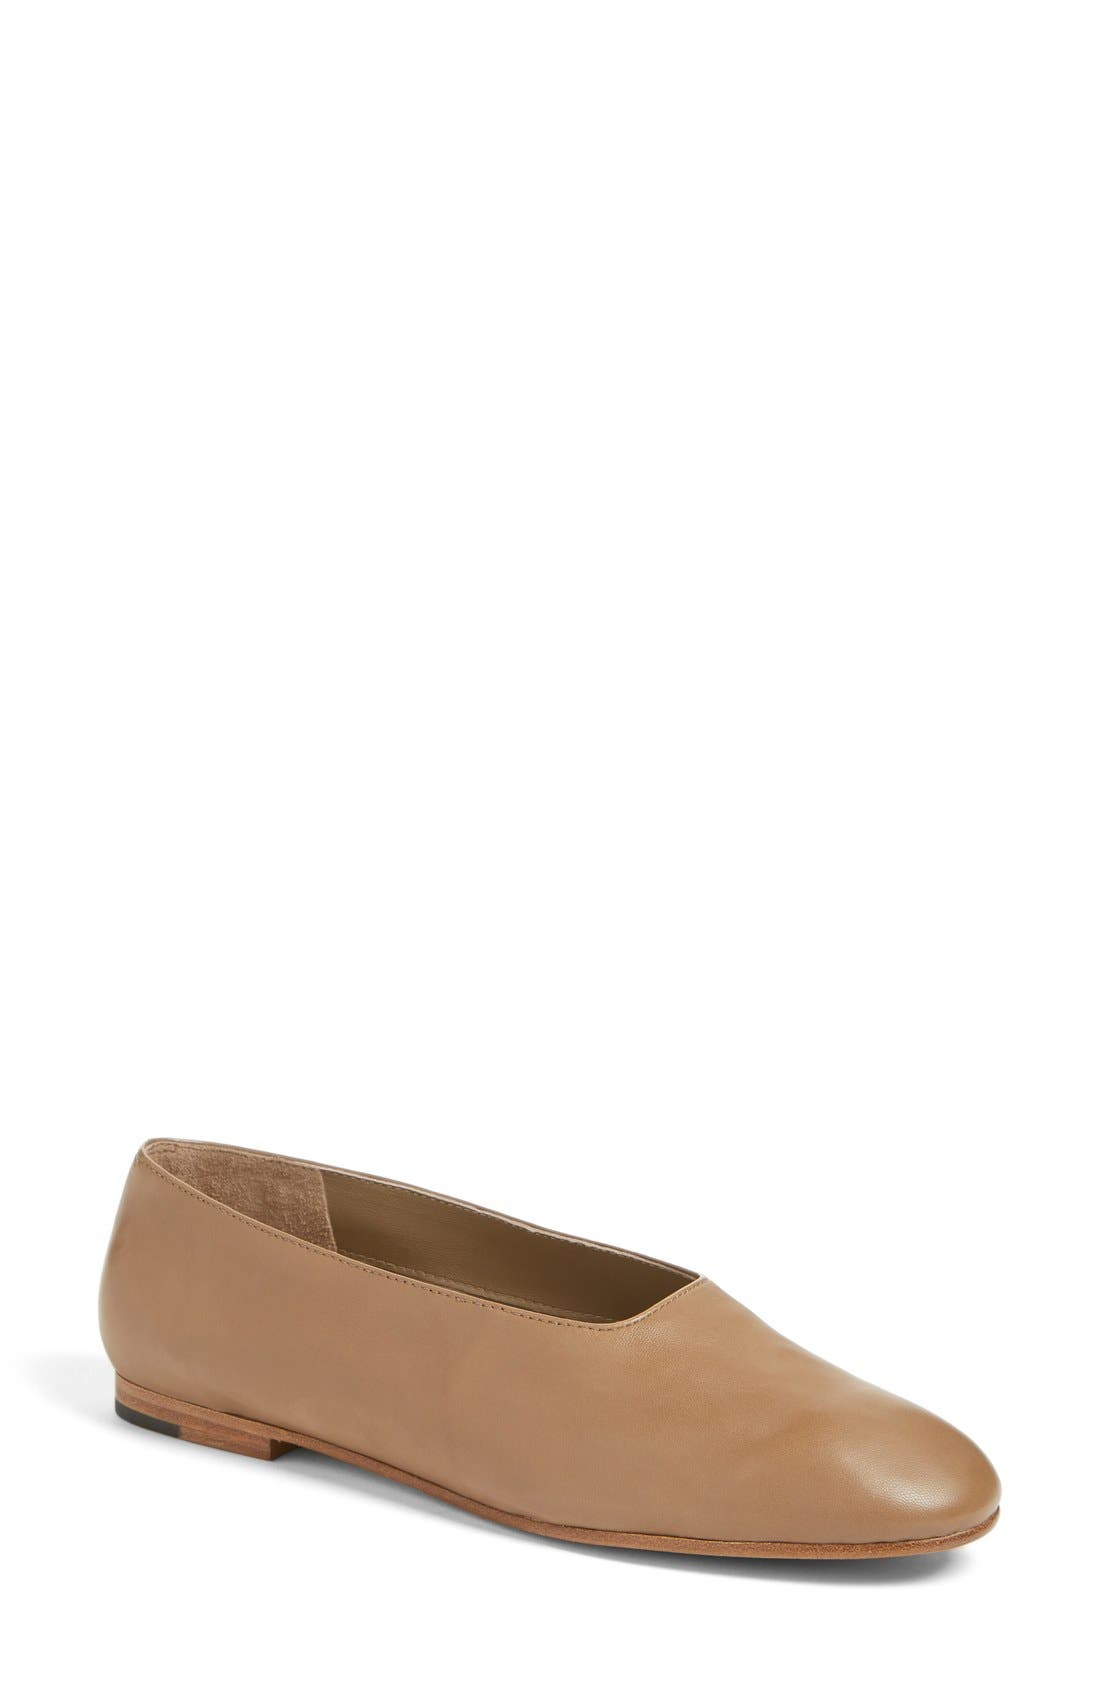 Alternate Image 1 Selected - Vince 'Maxwell' Flat (Women)